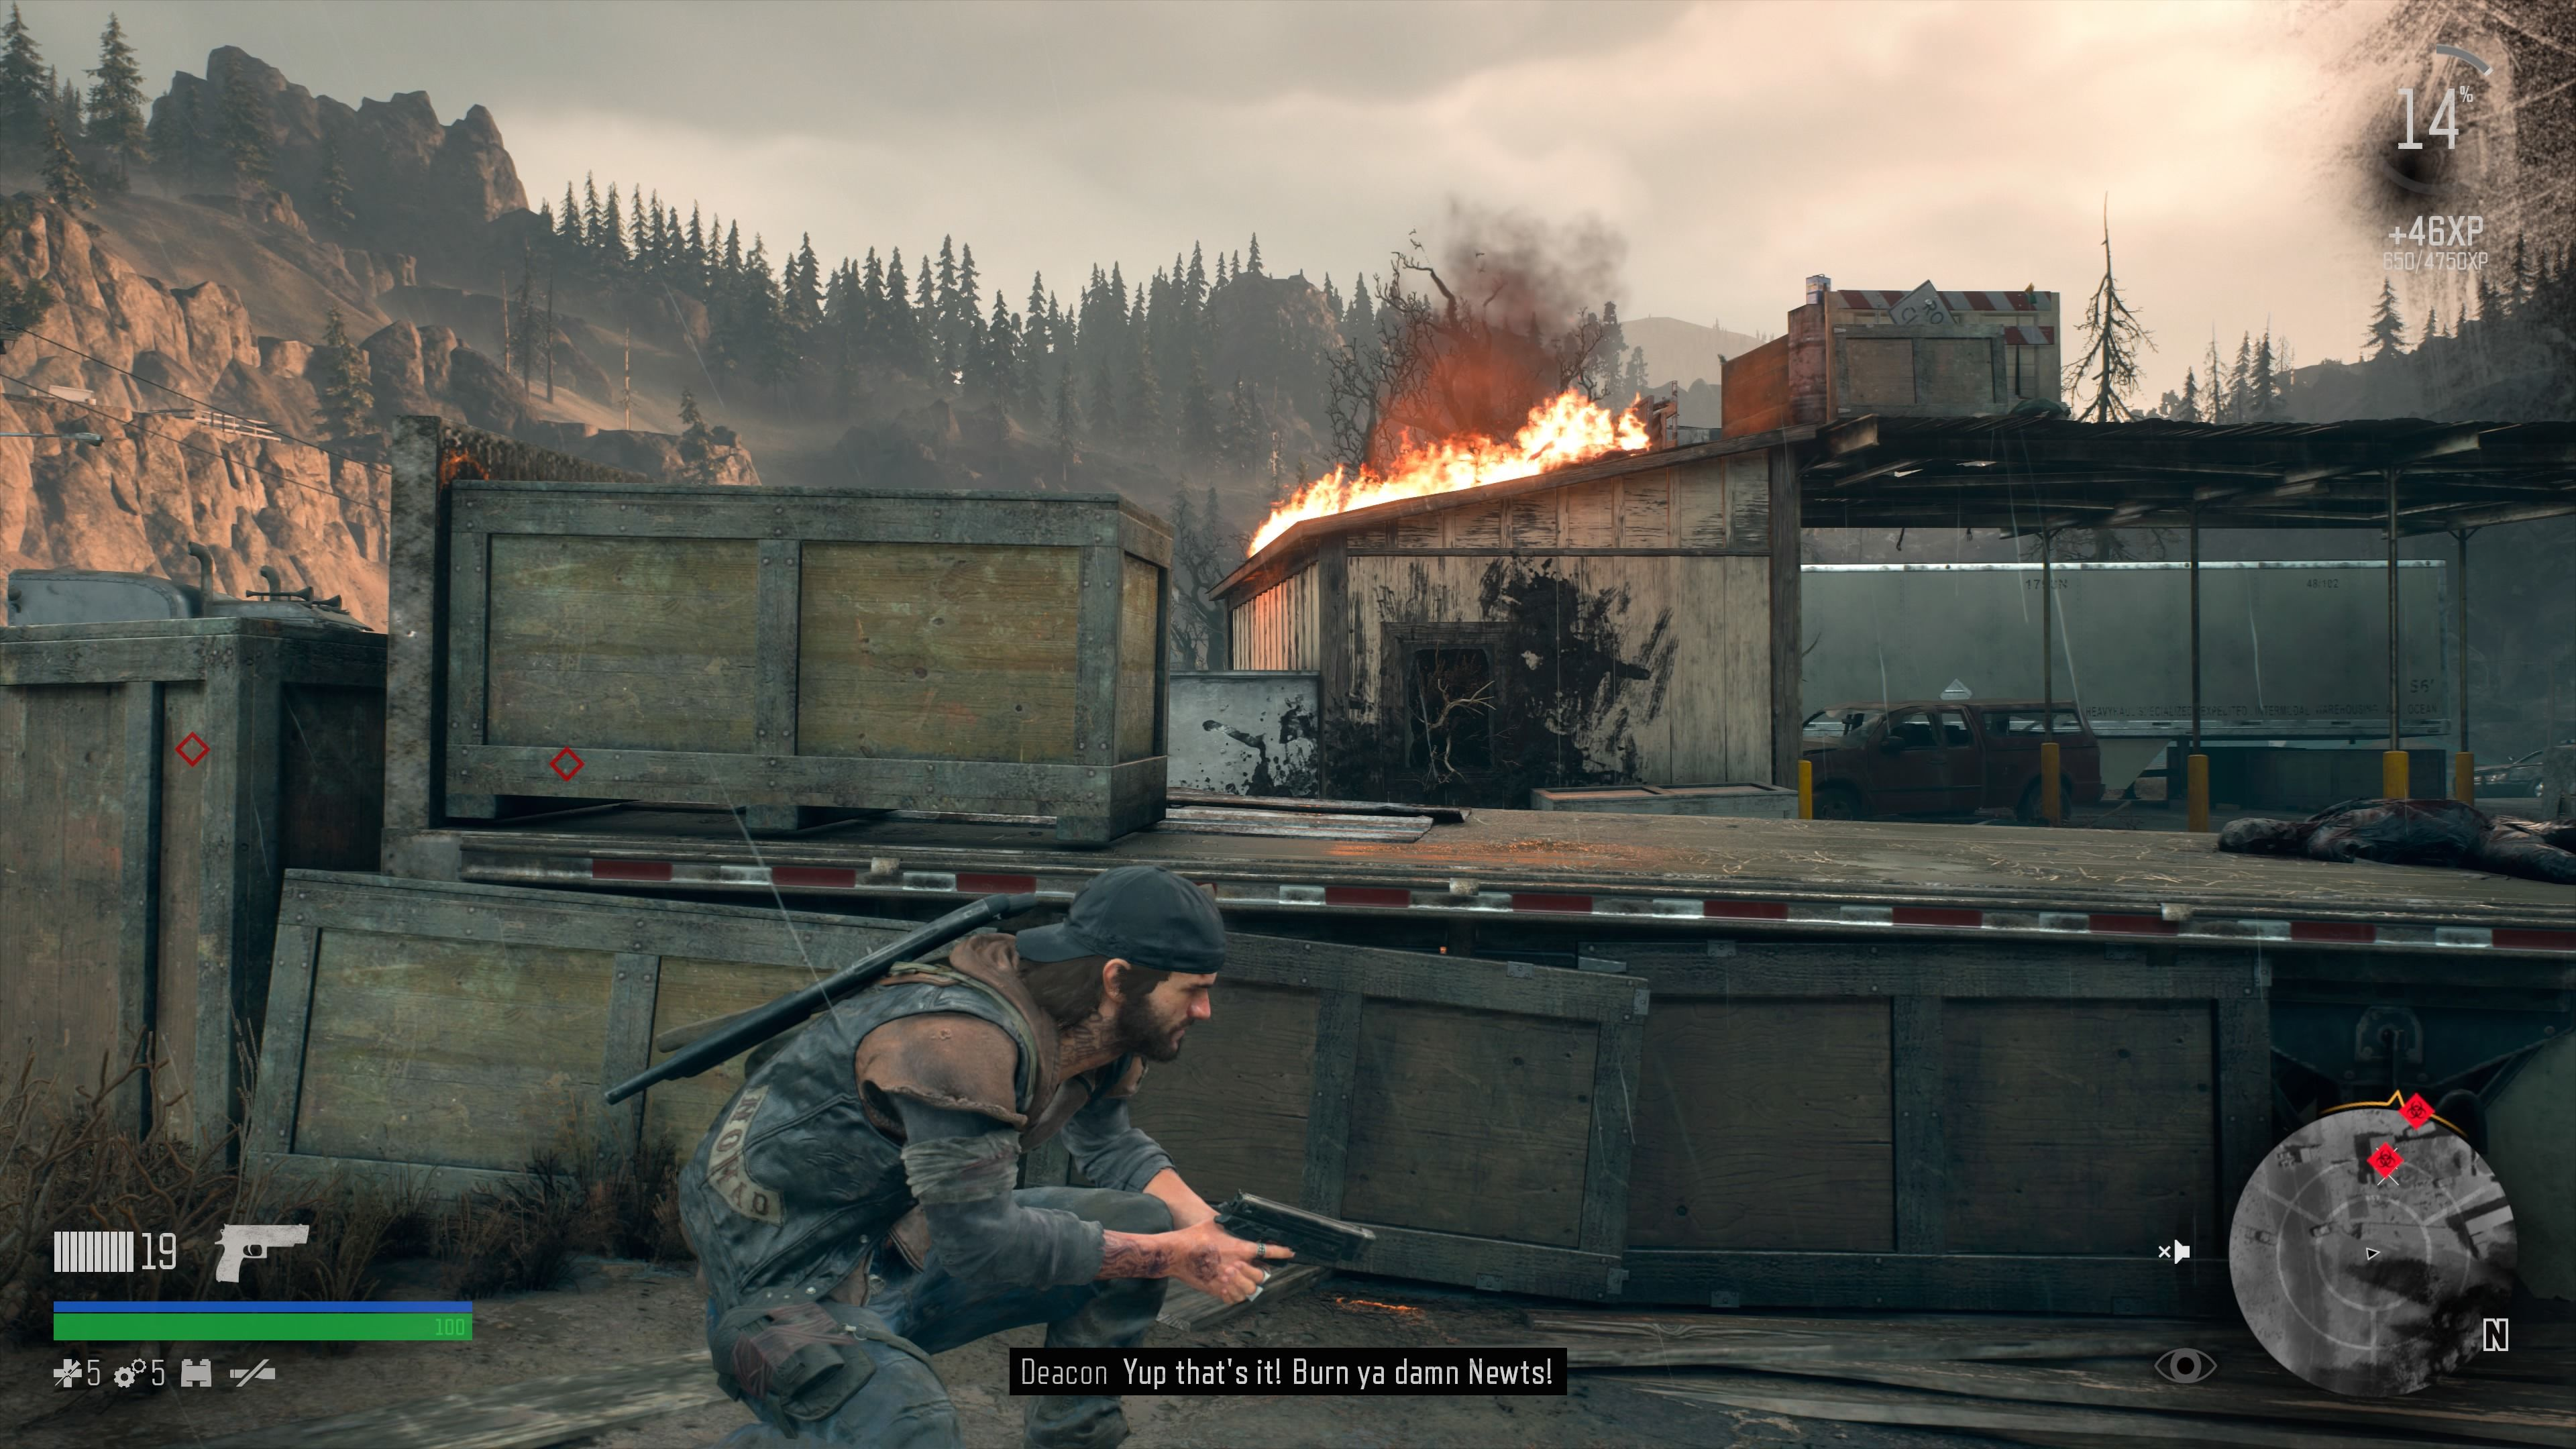 Days Gone PlayStation 4 Using molotov cocktail to scorch a couple of newts